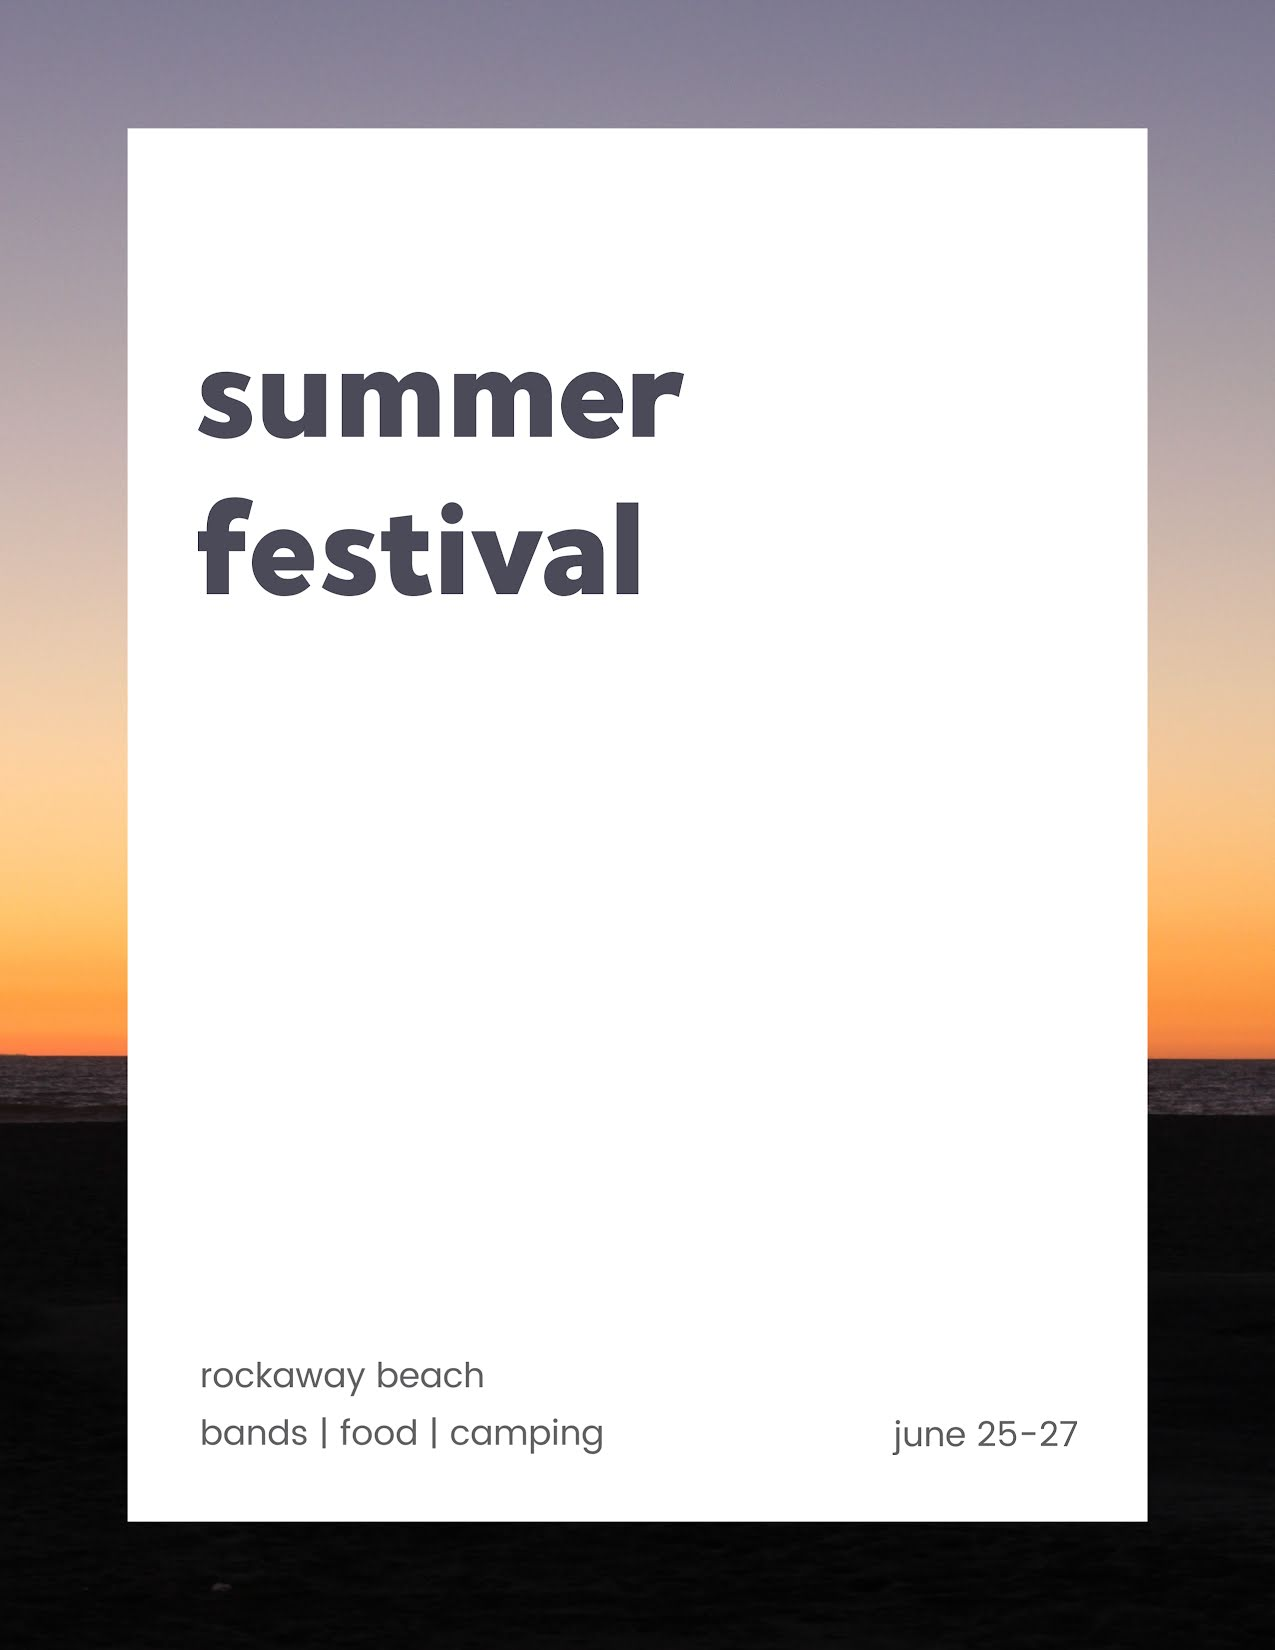 Summer Beach Festival - Flyer Template